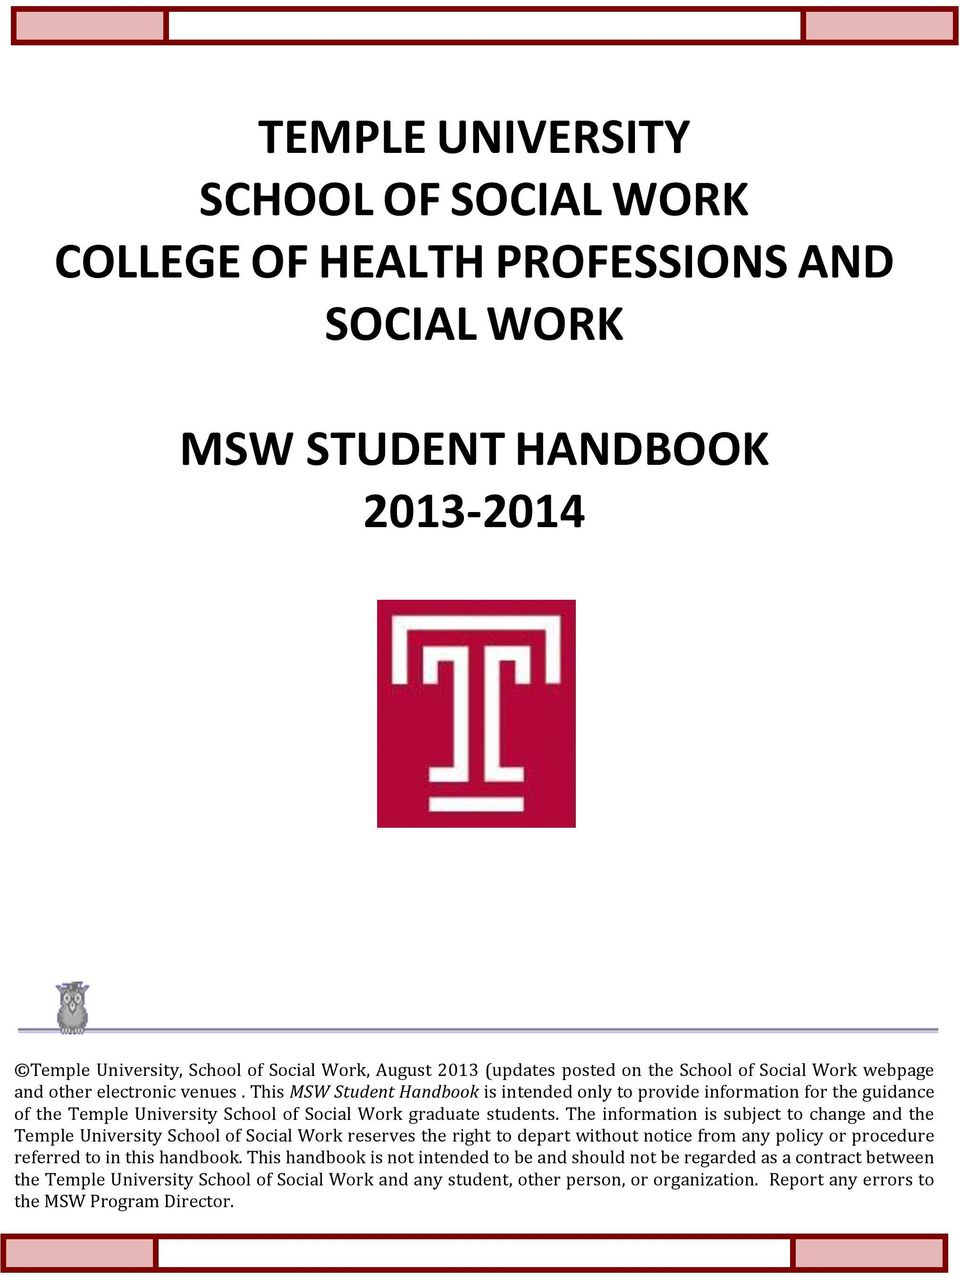 This MSW Student Handbook is intended only to provide information for the guidance of the Temple University School of Social Work graduate students.